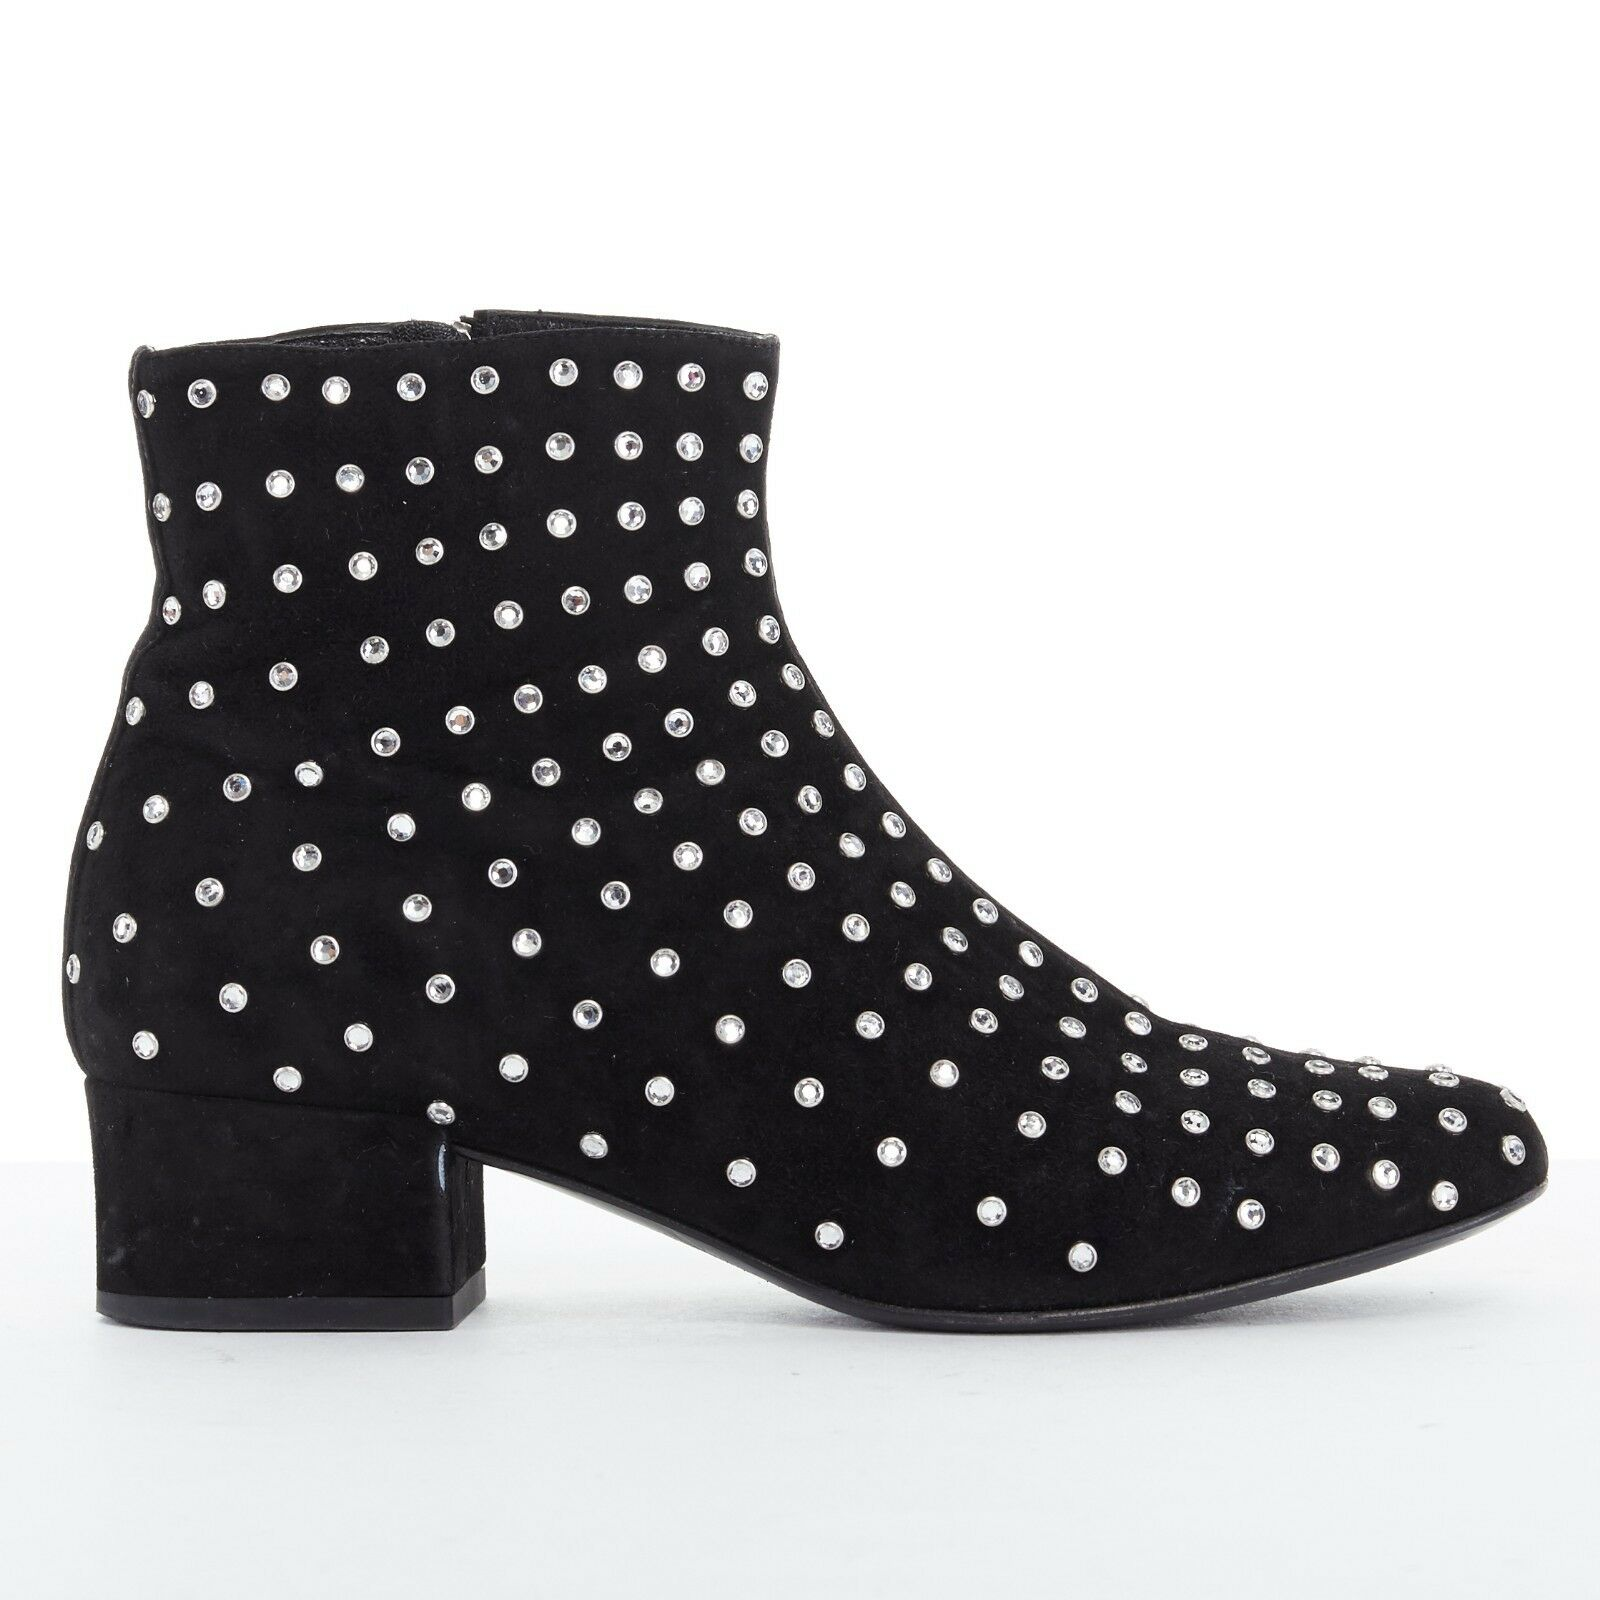 SAINT LAURENT PARIS black suede strass crystal embellished ankle boot shoe EU35